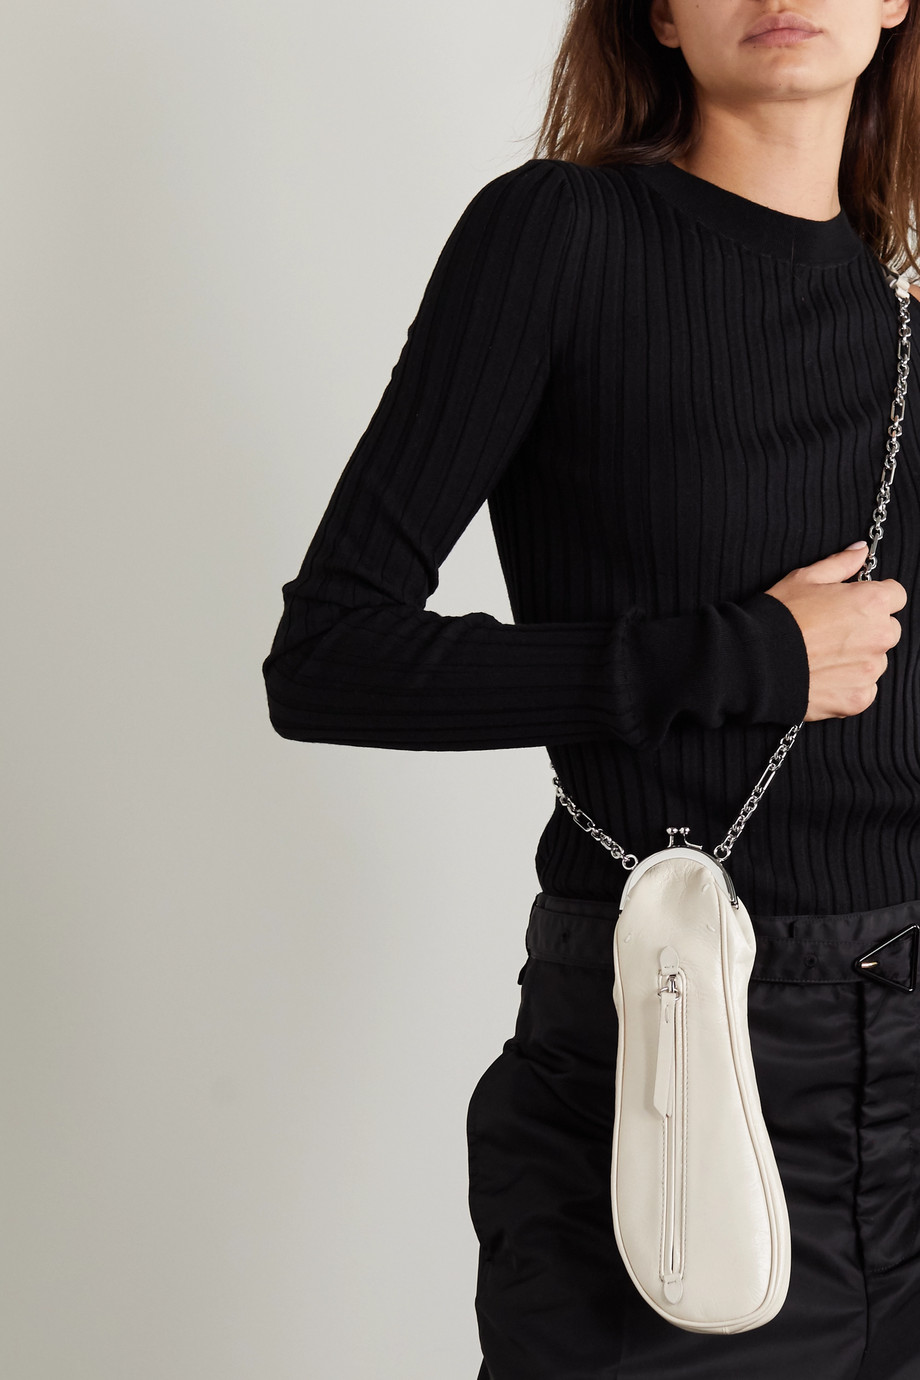 Maison Margiela Ballerina Tabi leather shoulder bag